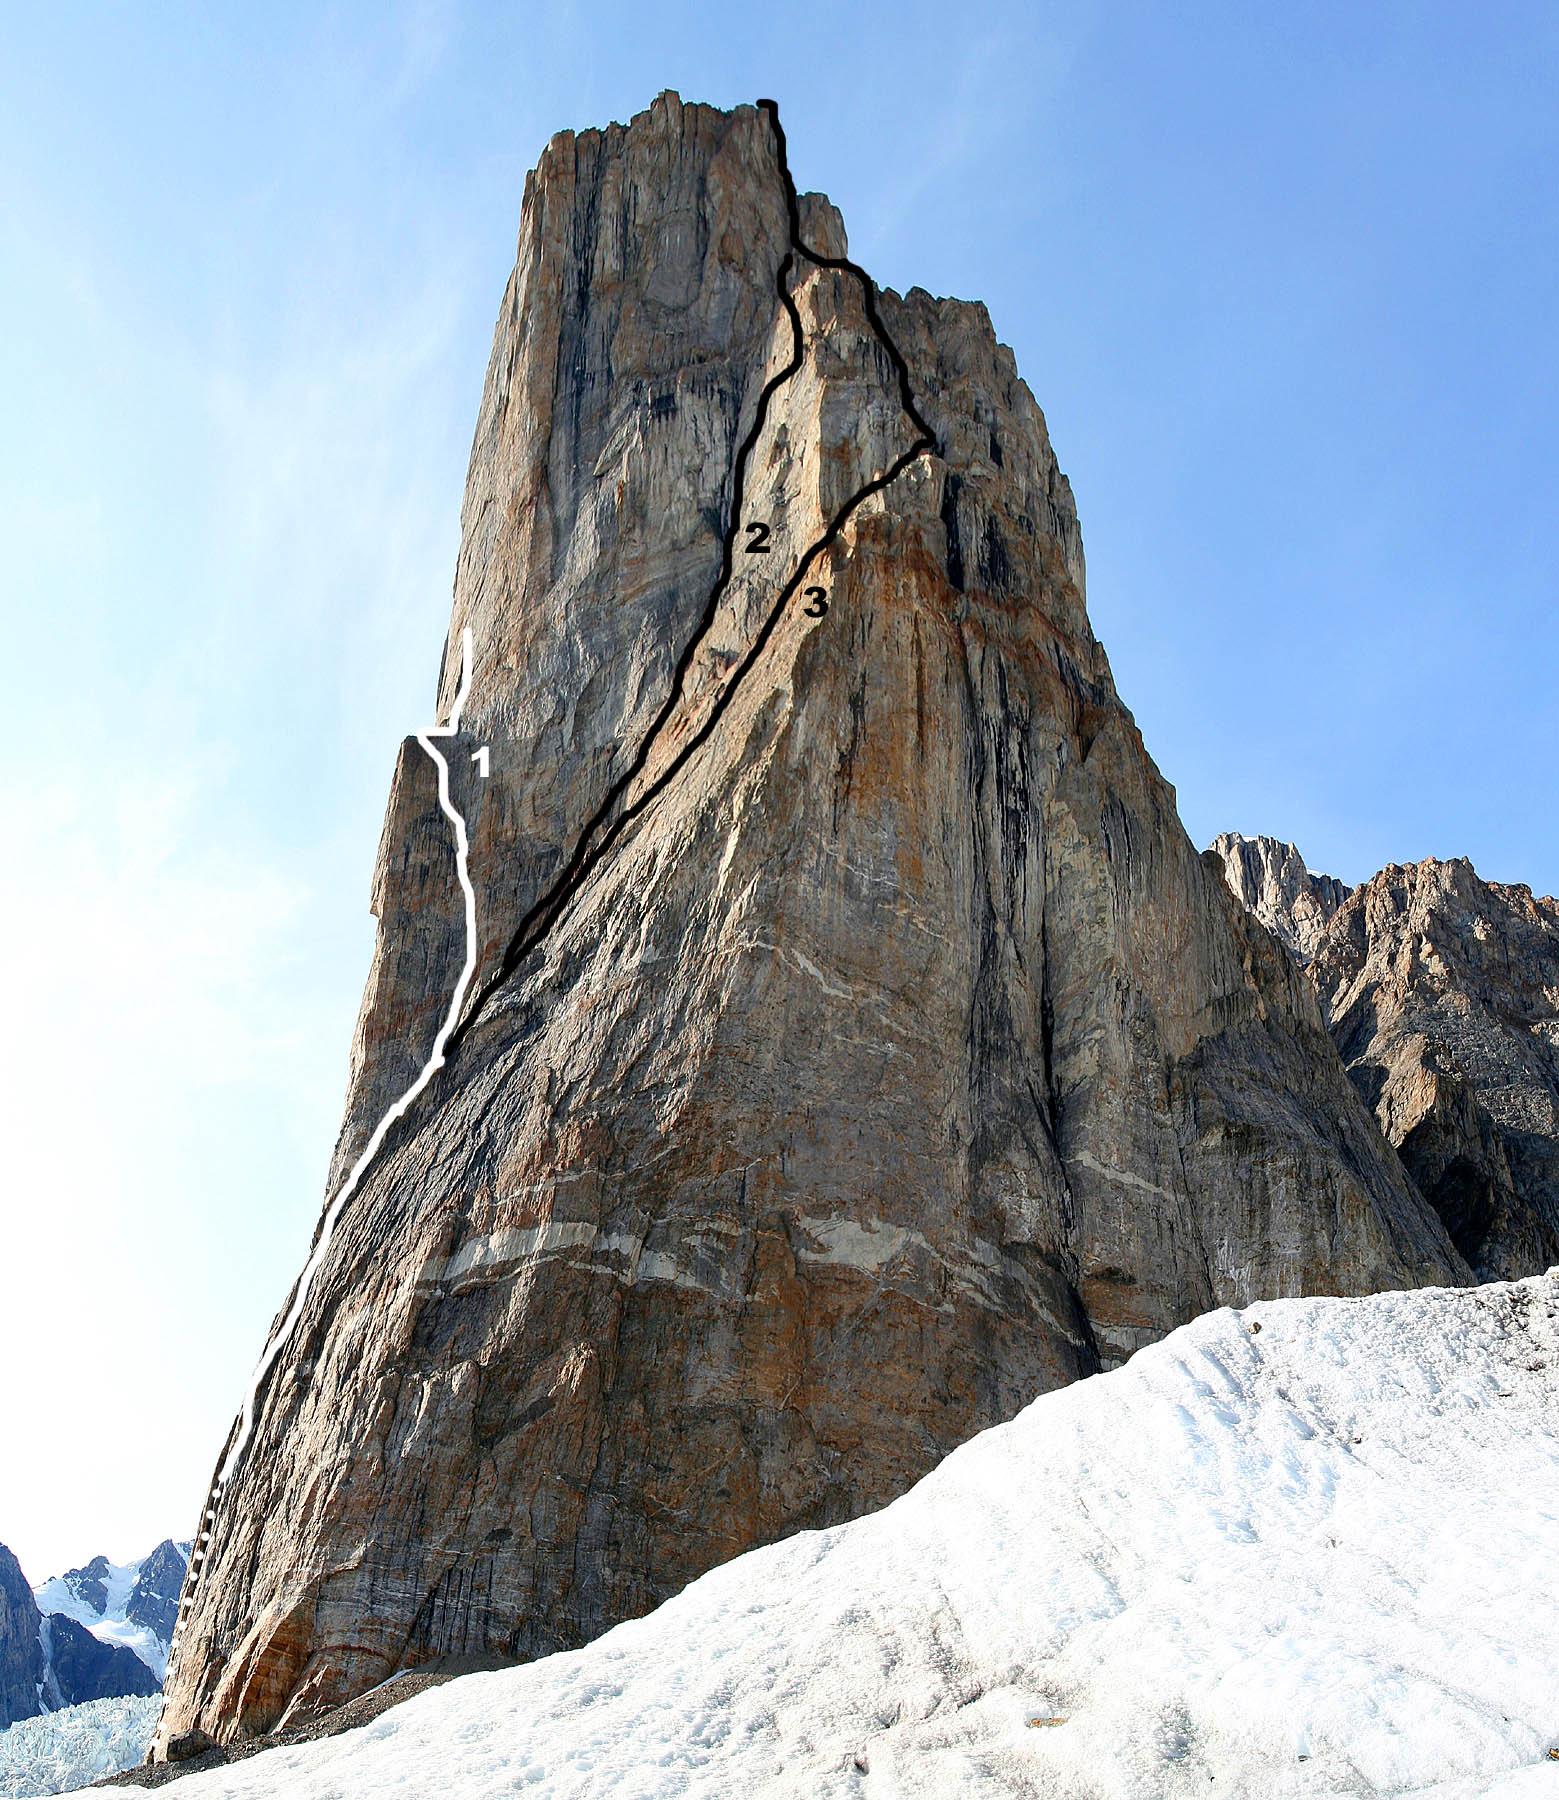 The Cenotaph from the east showing (1) de Jonge-Staleman attempt (UIAA VII, 600m), (2) Controversy (UIAA VII, 900m), and (3) First Ascent Route (UIAA VII, 900m).